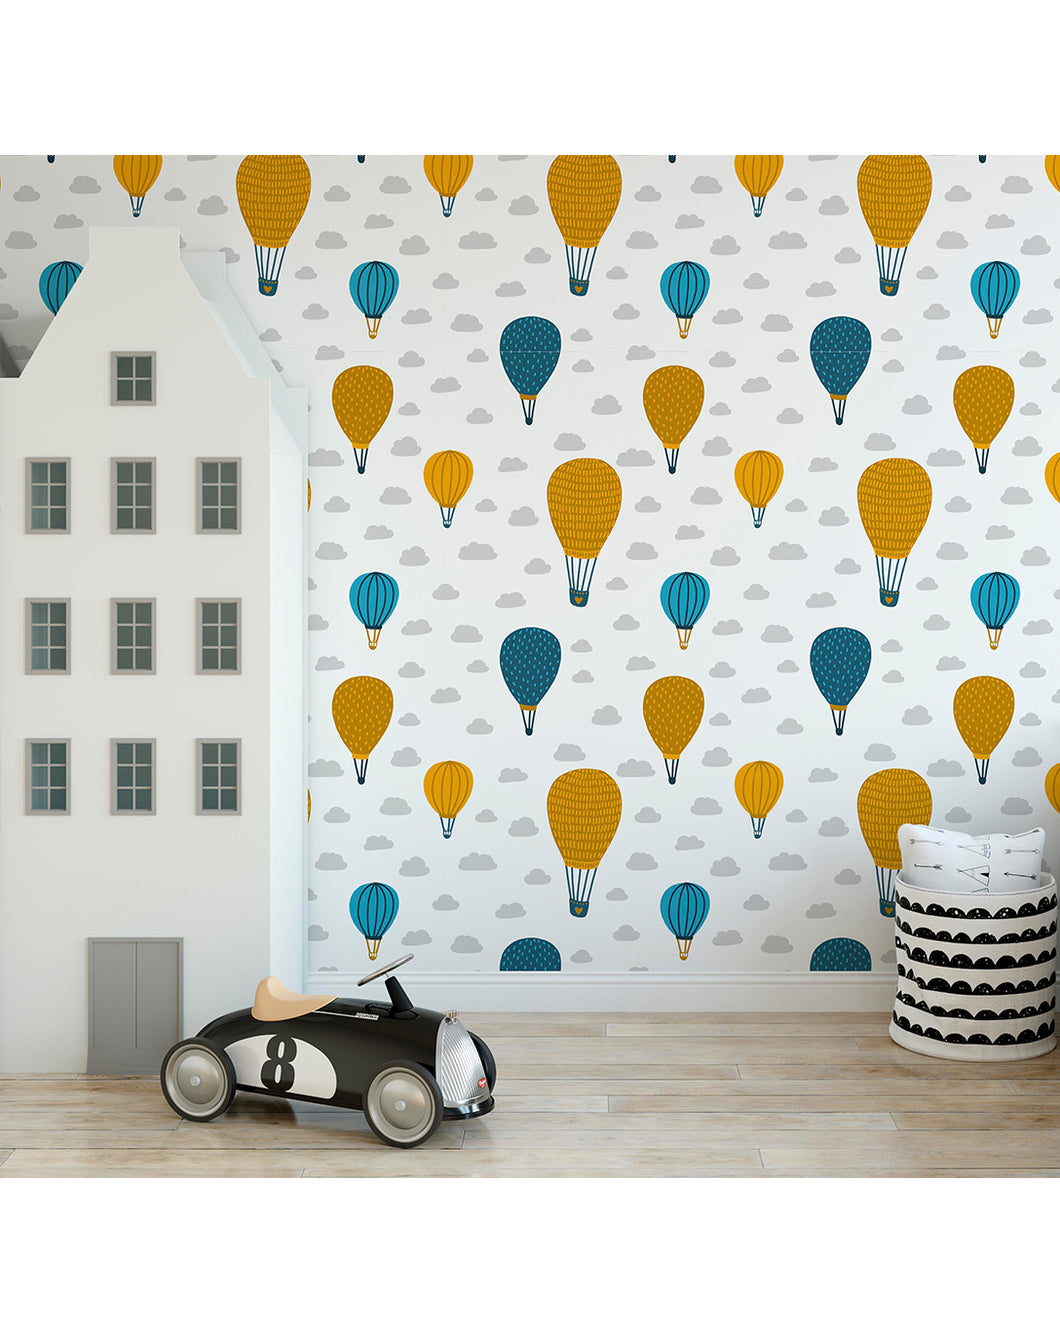 d55deb992c6f0 Self Adhesive Air Balloons in Sky Removable Wallpaper for Kids ...